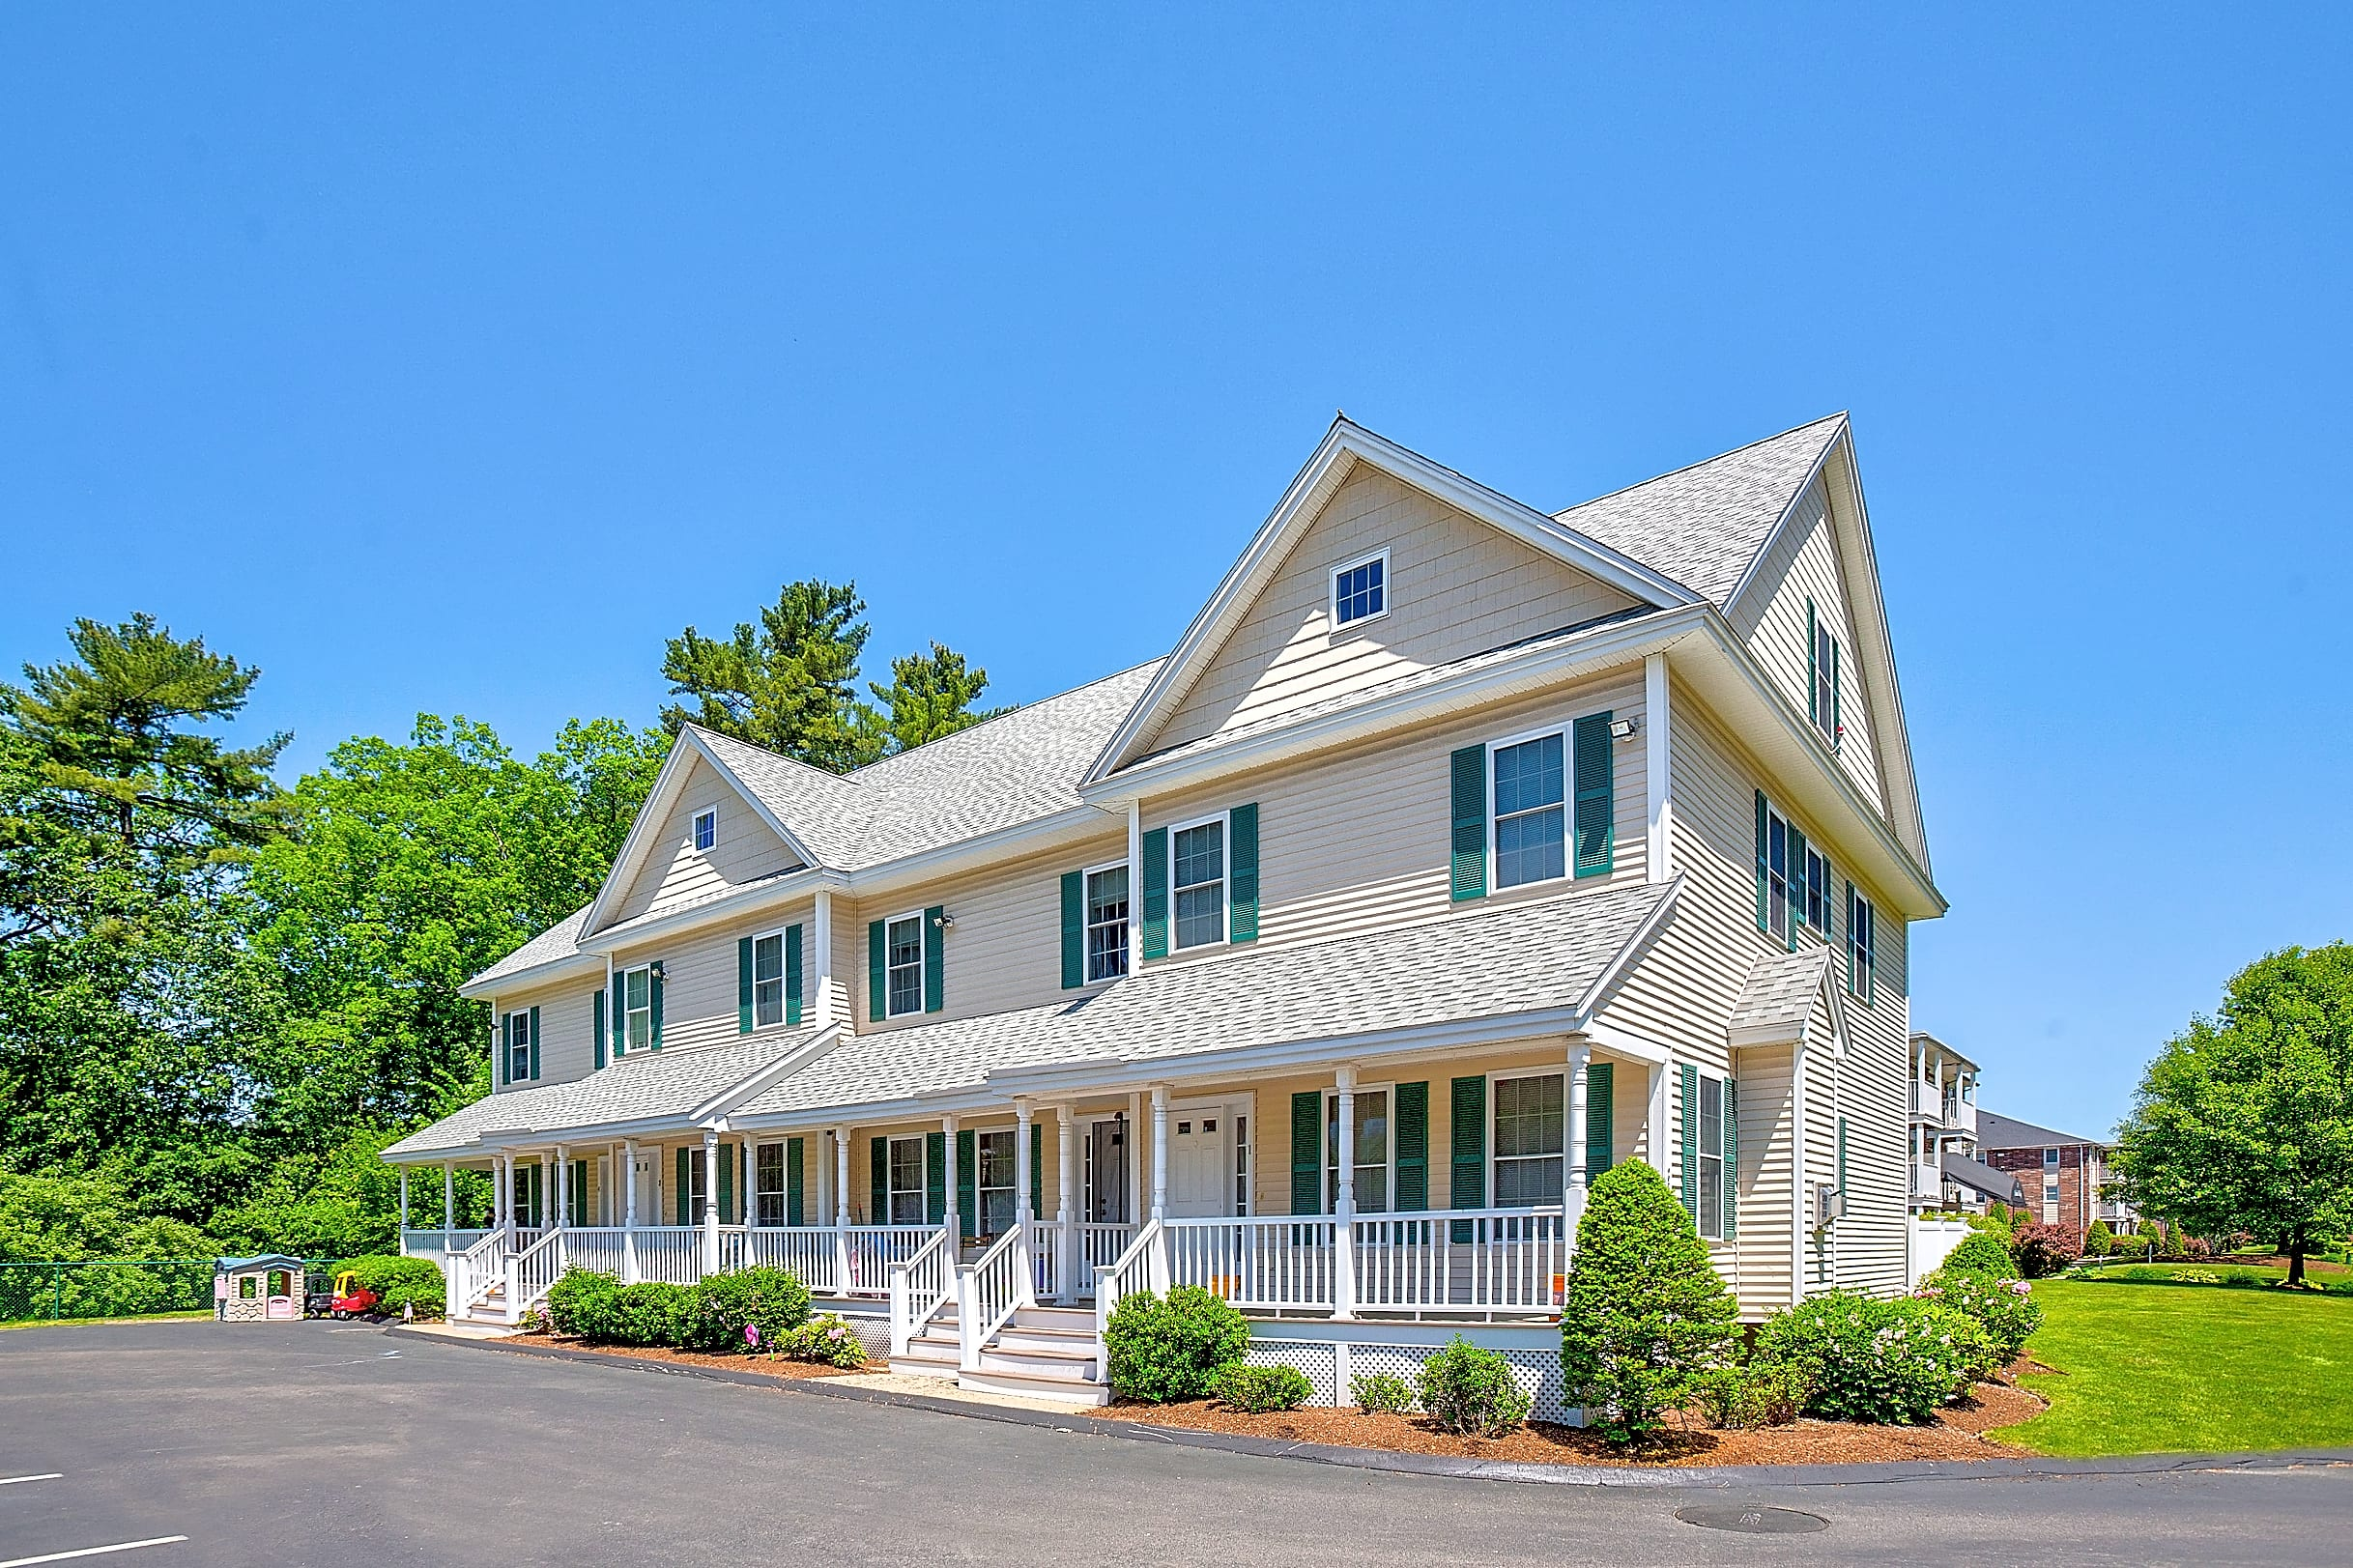 Apartments Near Merrimack Colonial Village for Merrimack College Students in North Andover, MA